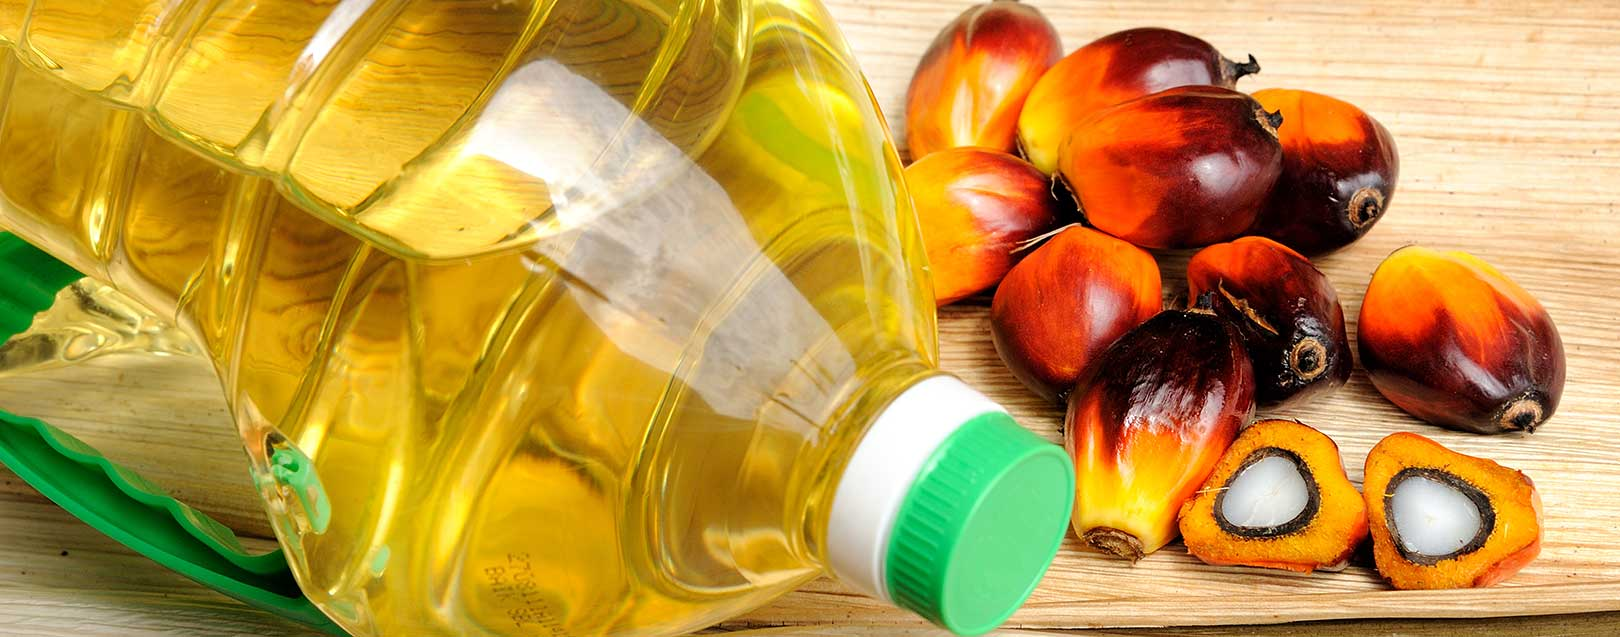 India's edible oil imports to increase by 15-20%